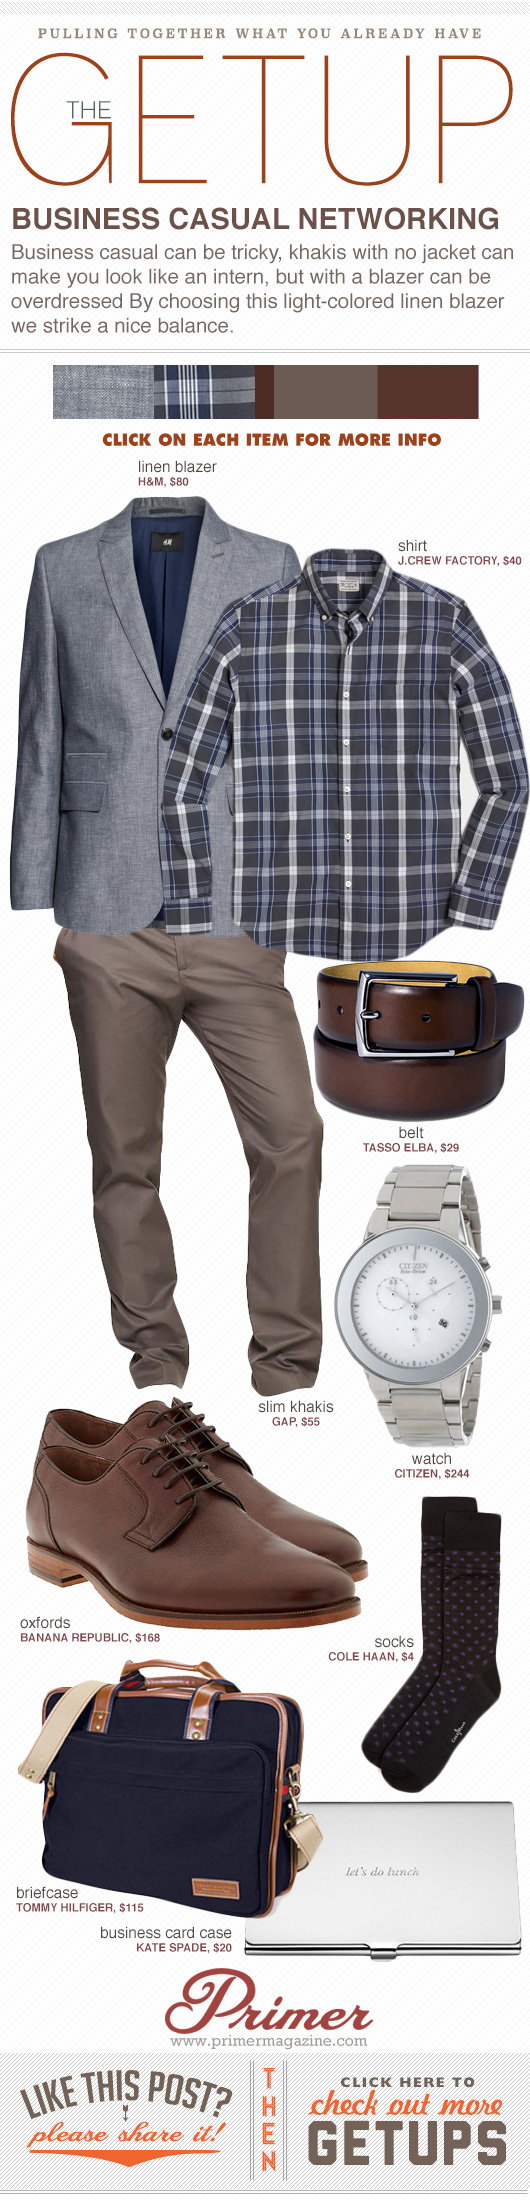 Getup - Business Casual Networking outfit - blazer, plaid shirt, brown pants